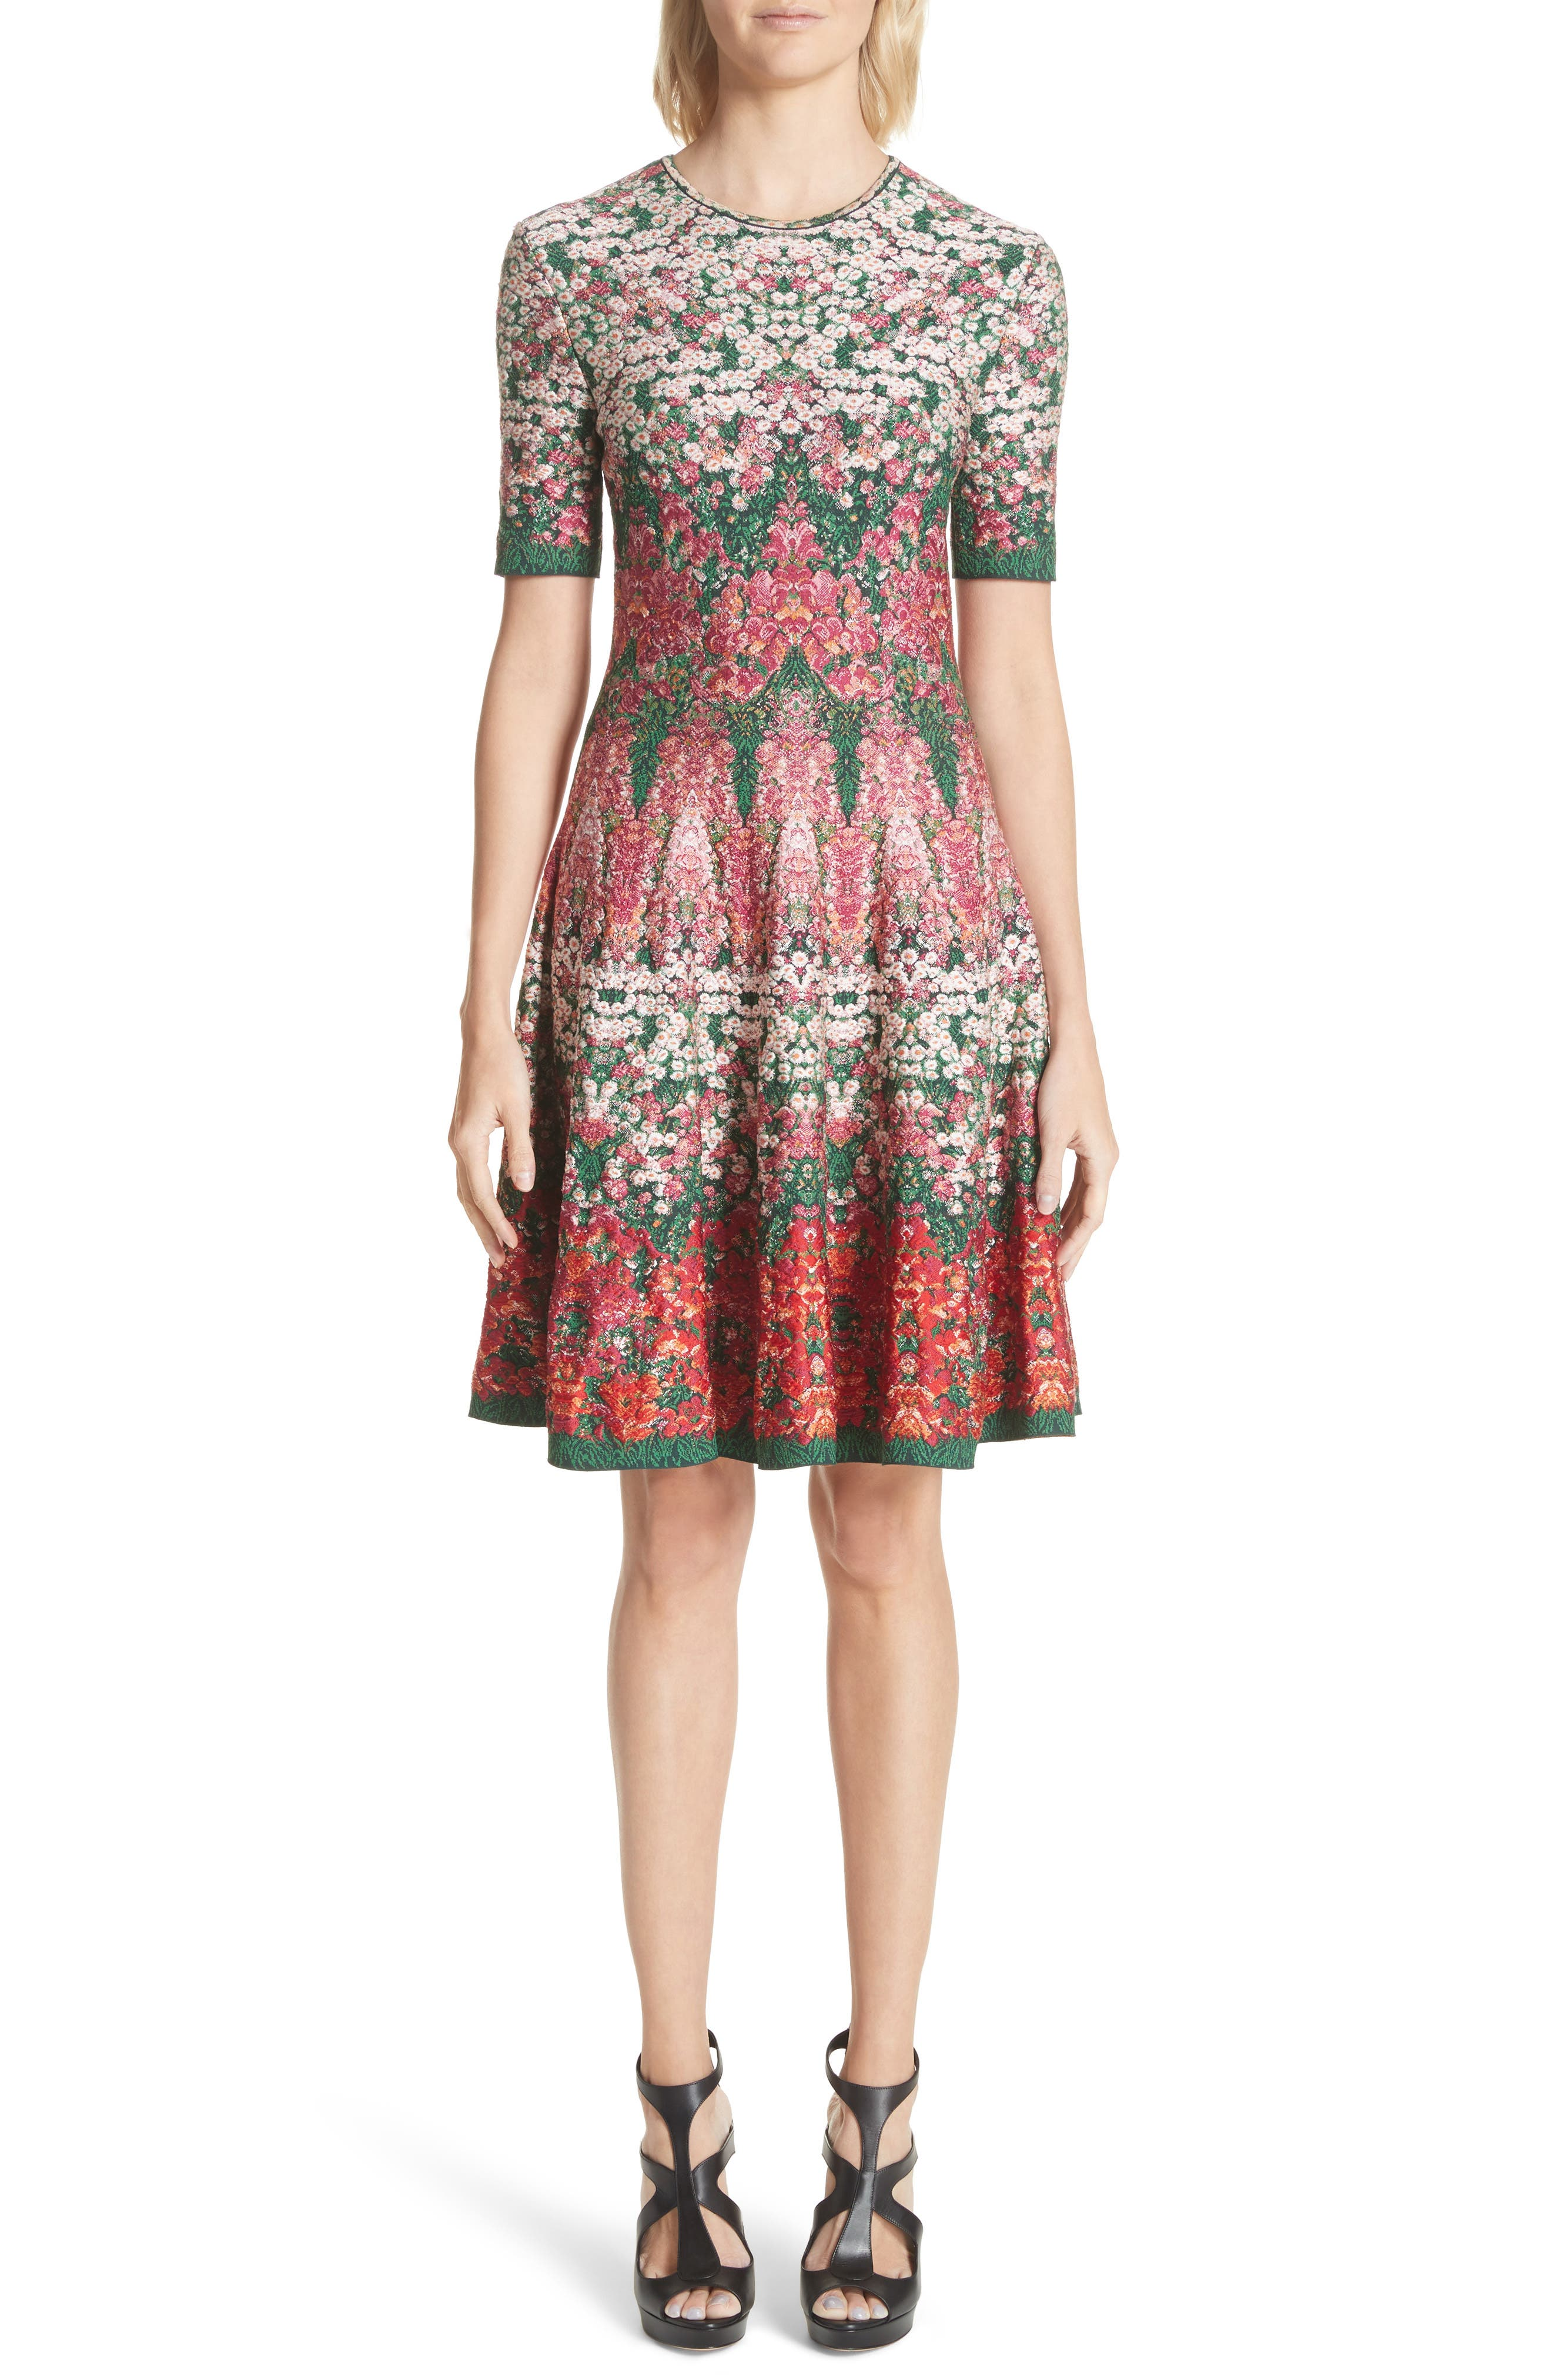 Main Image - Alexander McQueen Floral Jacquard Knit Fit & Flare Dress